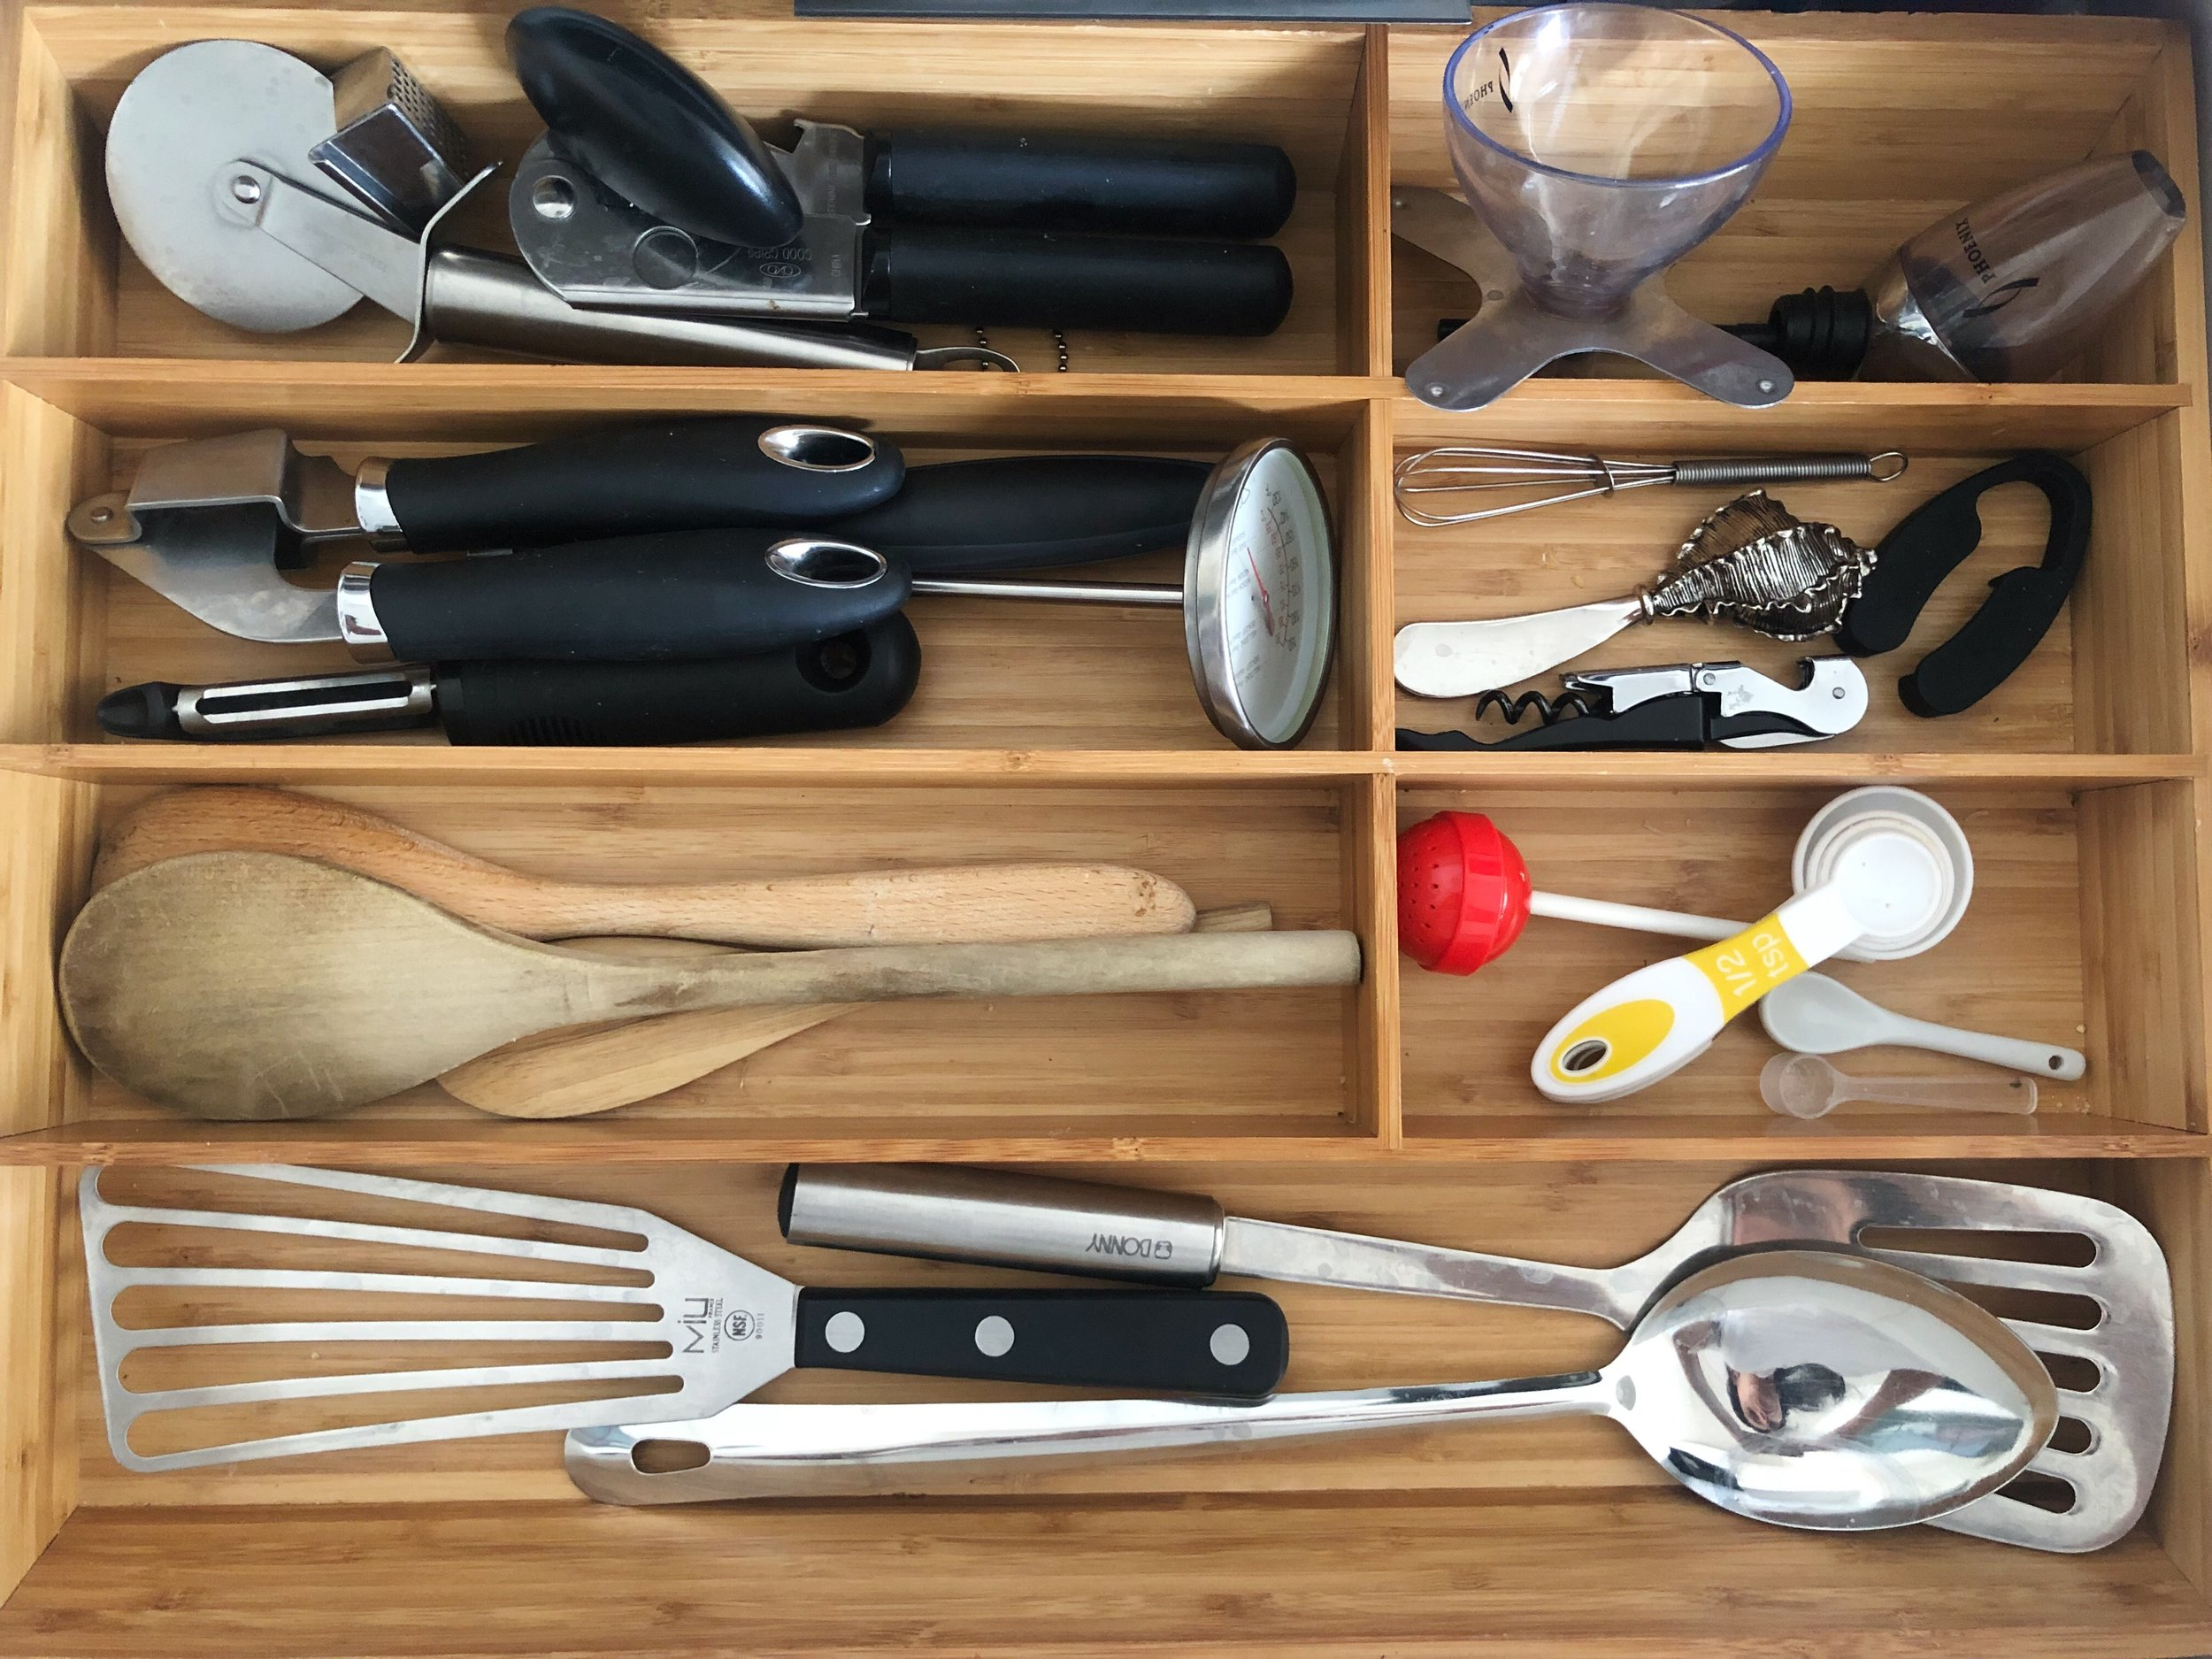 drawer dividers - Whether for your kitchen tools and utensils, or your panties (hehe) a divider is a MUST for any organized home. It's the concept of having a place for every item in your home, while also being able to view it and have it easily accessible (because you know where you've put it!) It's called a junk drawer for a reason- and your panties and expensive knives should have a home too.